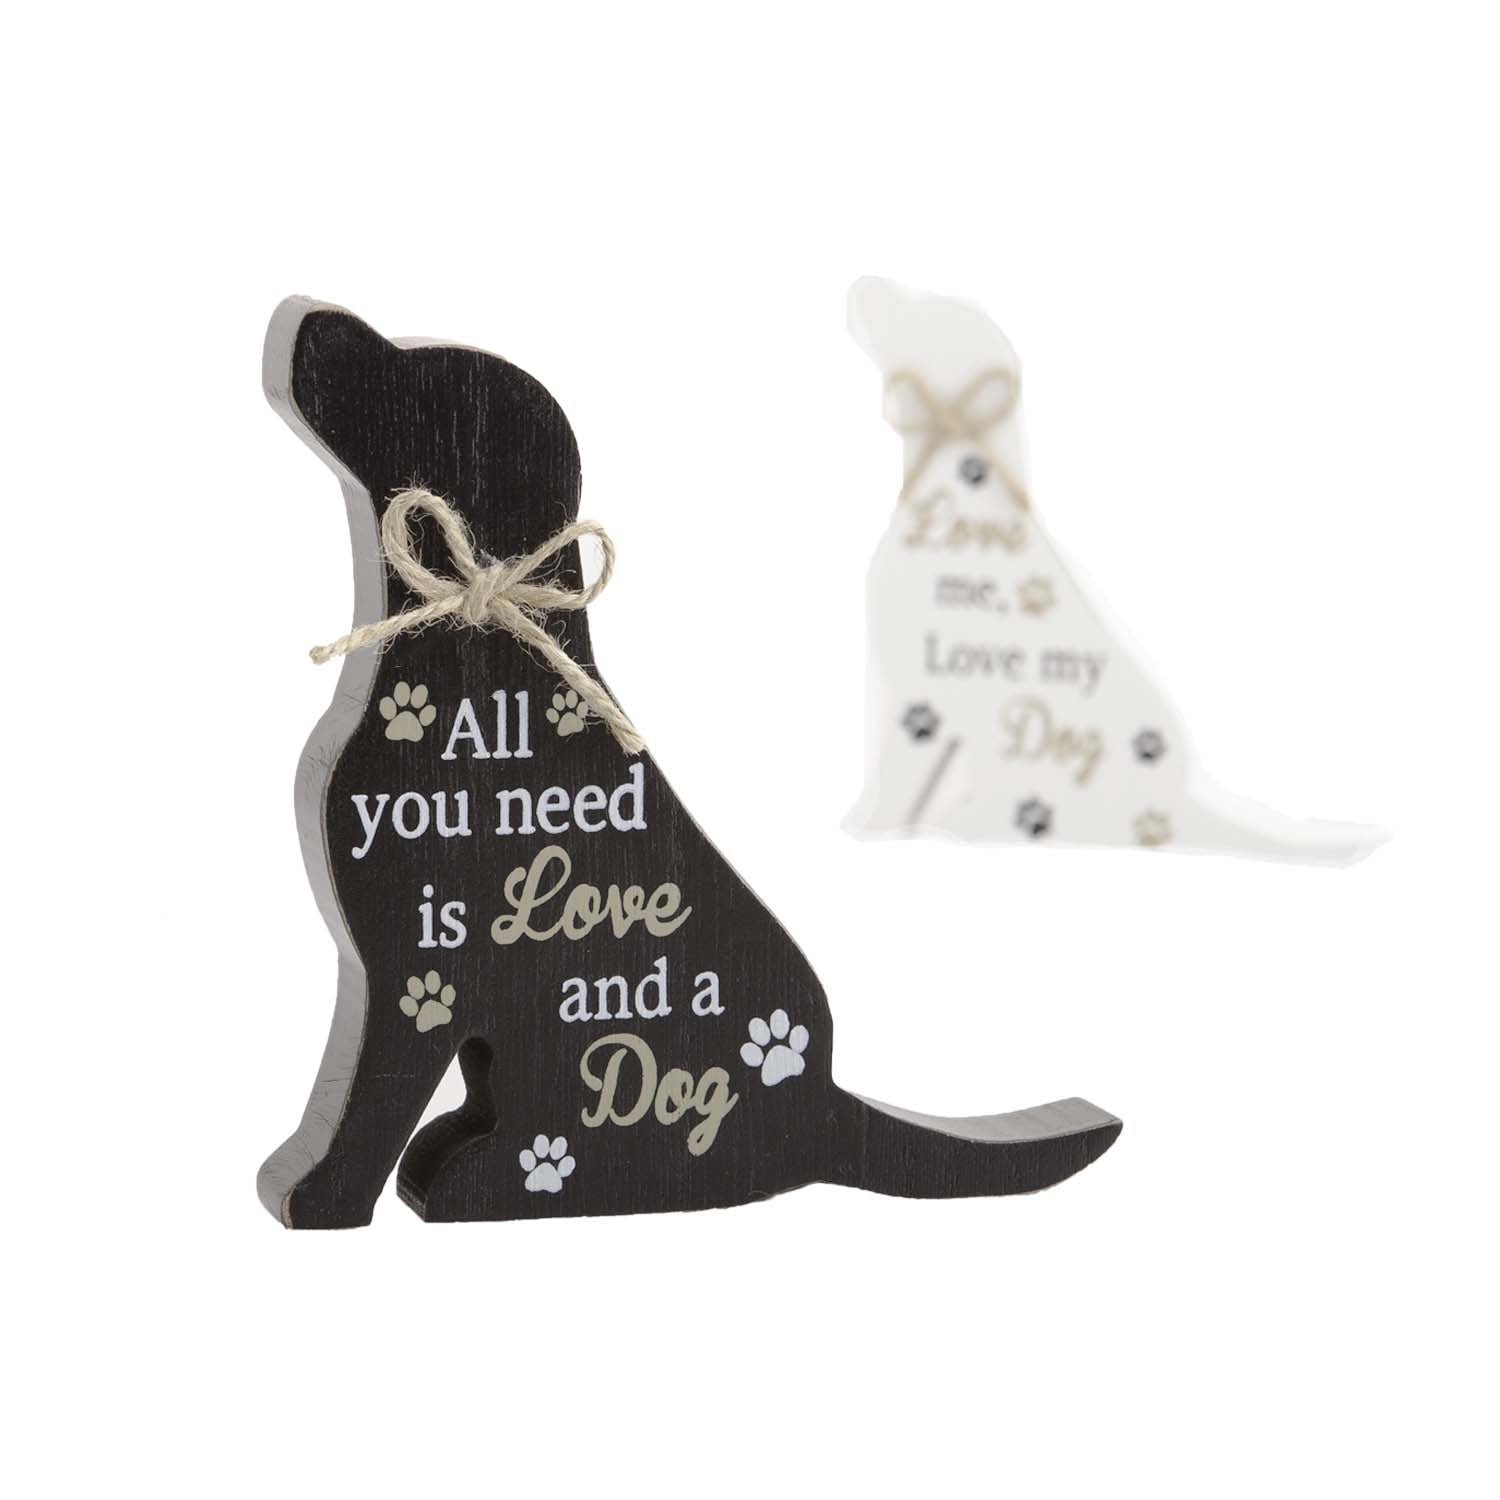 Dog Lover Gifts available at Dog Krazy Gifts – Labrador Standing Dog Sign, All you Need is Love and A Dog, Just Part Of Our Collection Of Signs Available At www.dogkrazygifts.co.uk